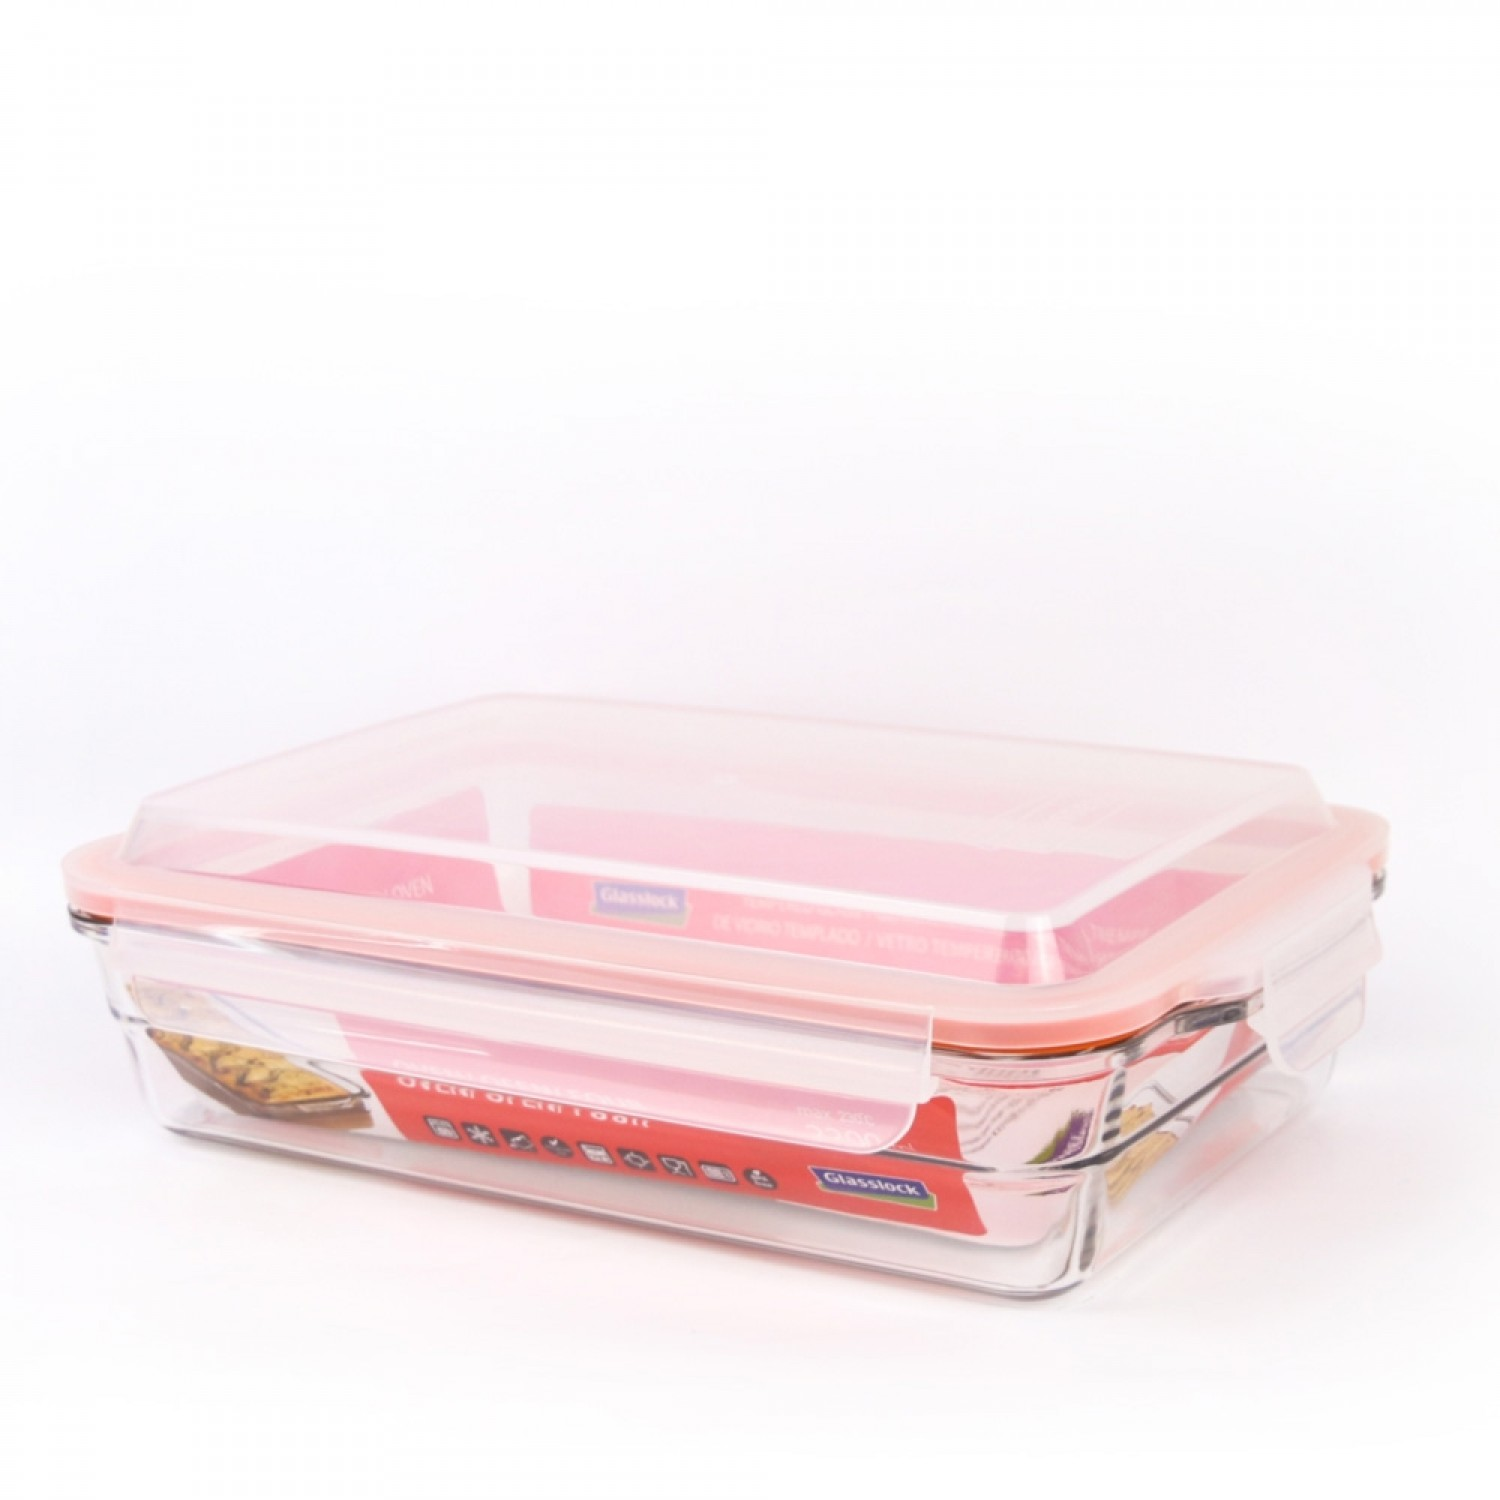 Glasslock Oven Rectangular Baking Dish and Food Container